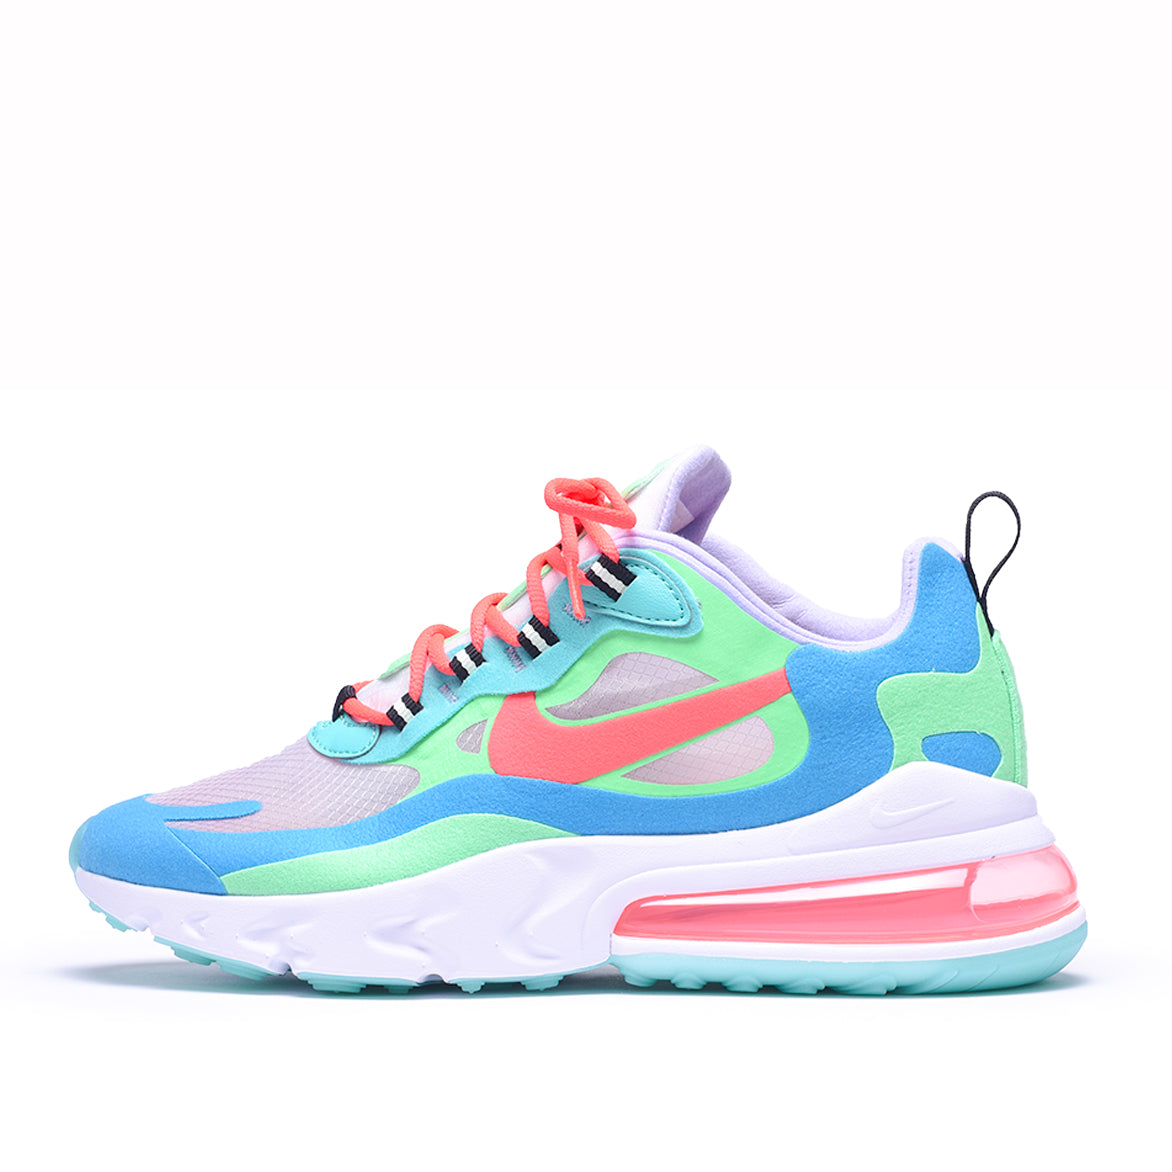 "WMNS AIR MAX 270 REACT ""BLUE LAGOON"""